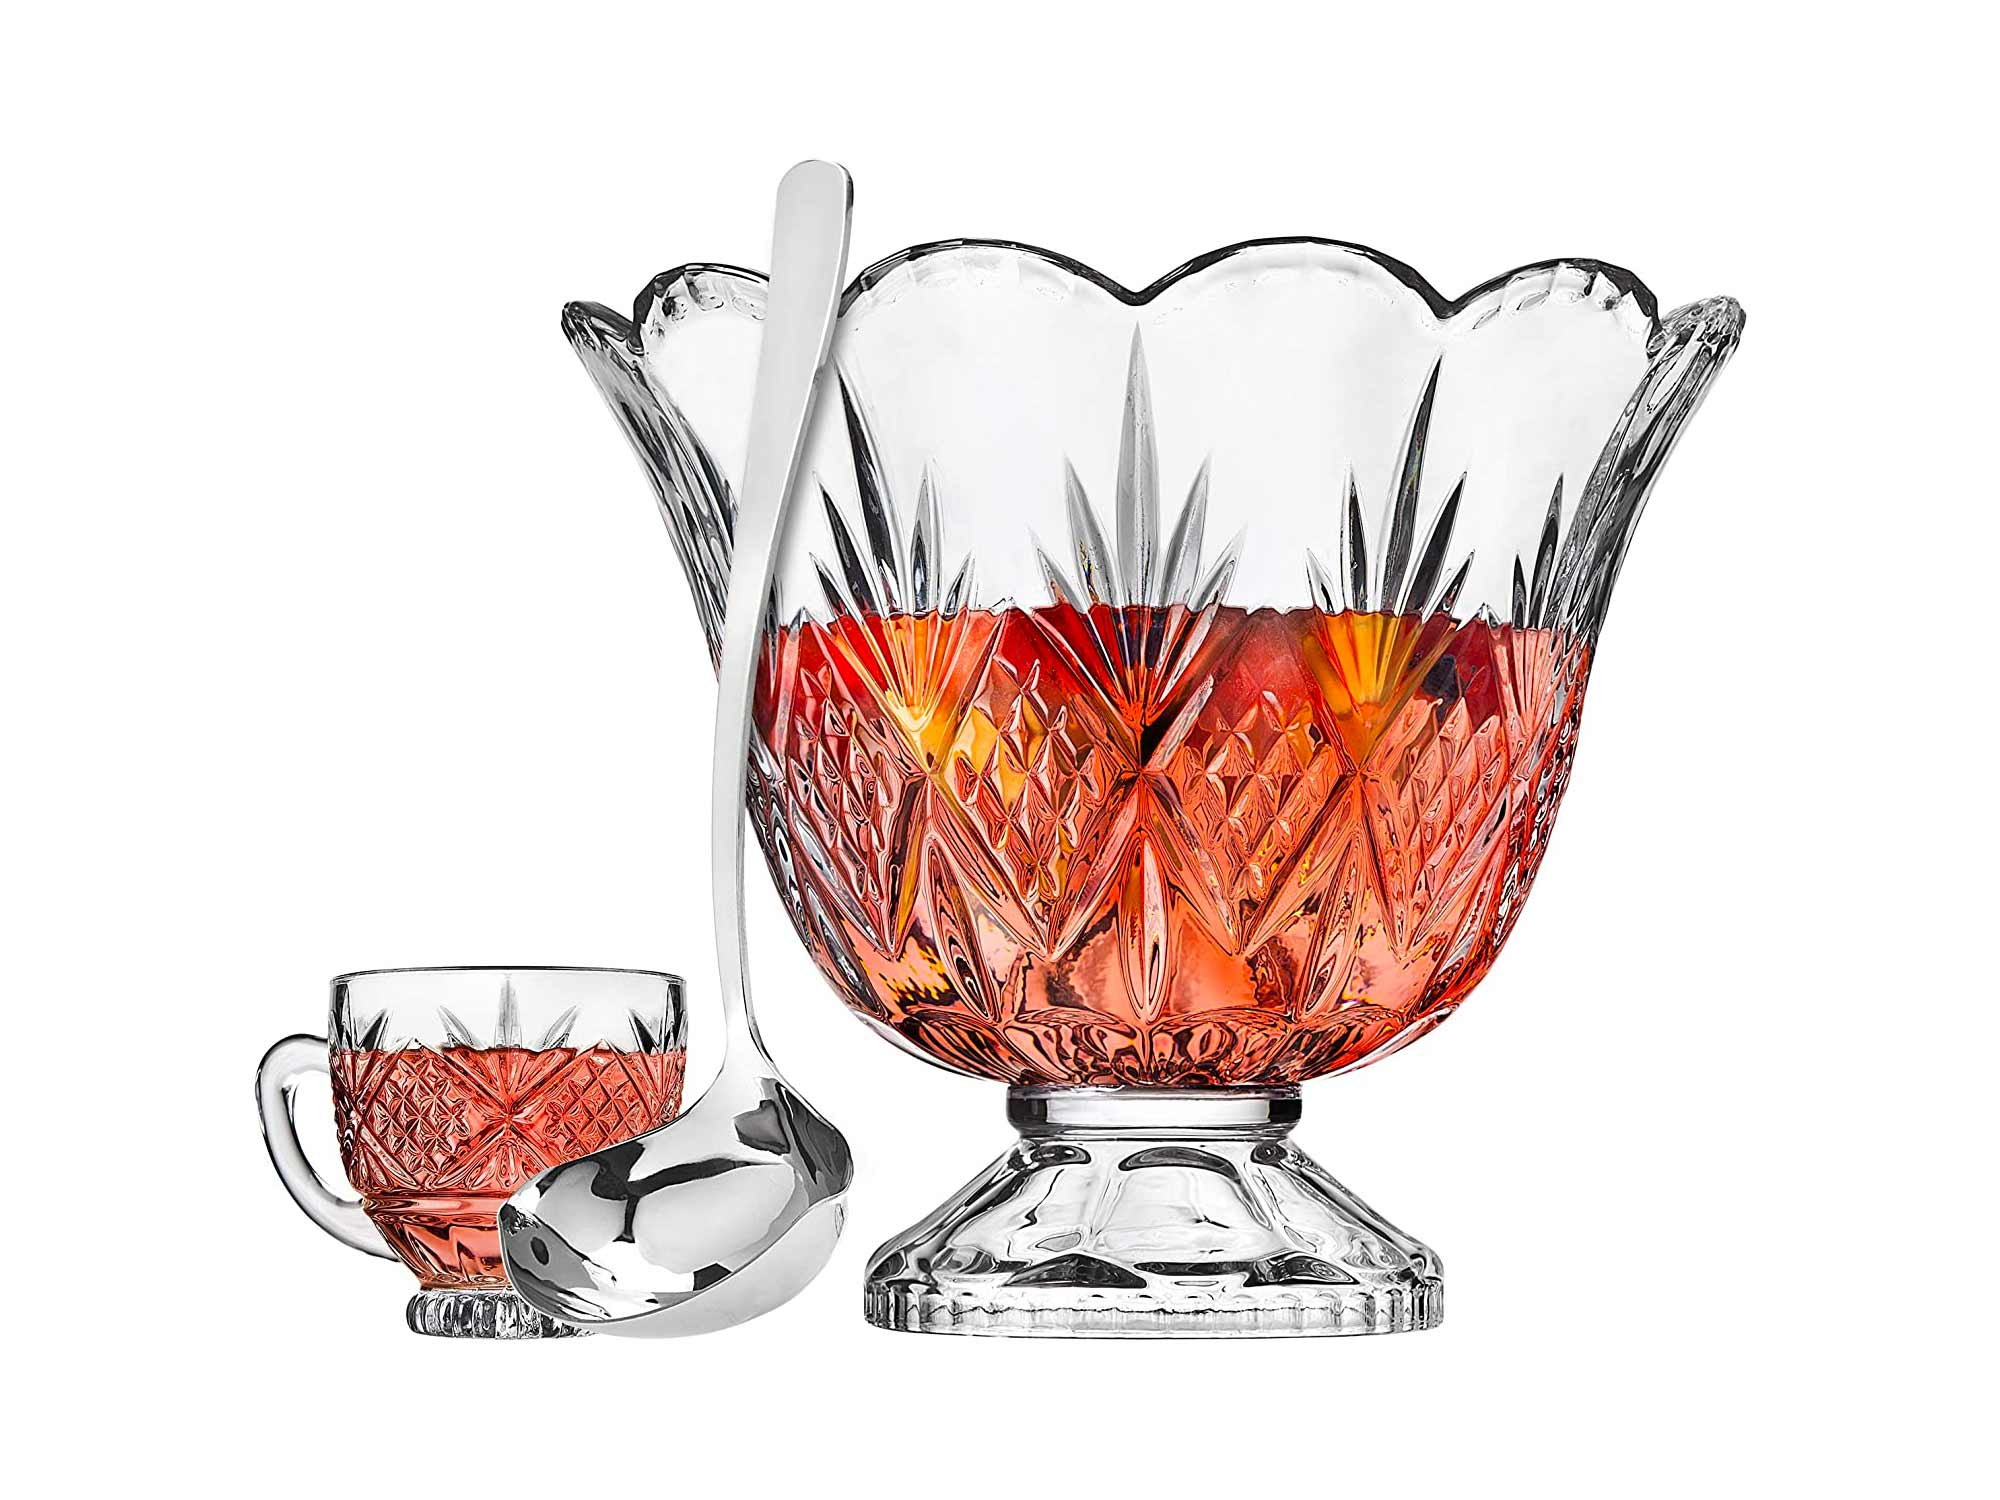 Godinger Dublin Crystal Punch Bowl Set with 8 Cups and Ladle - 10 Piece Set